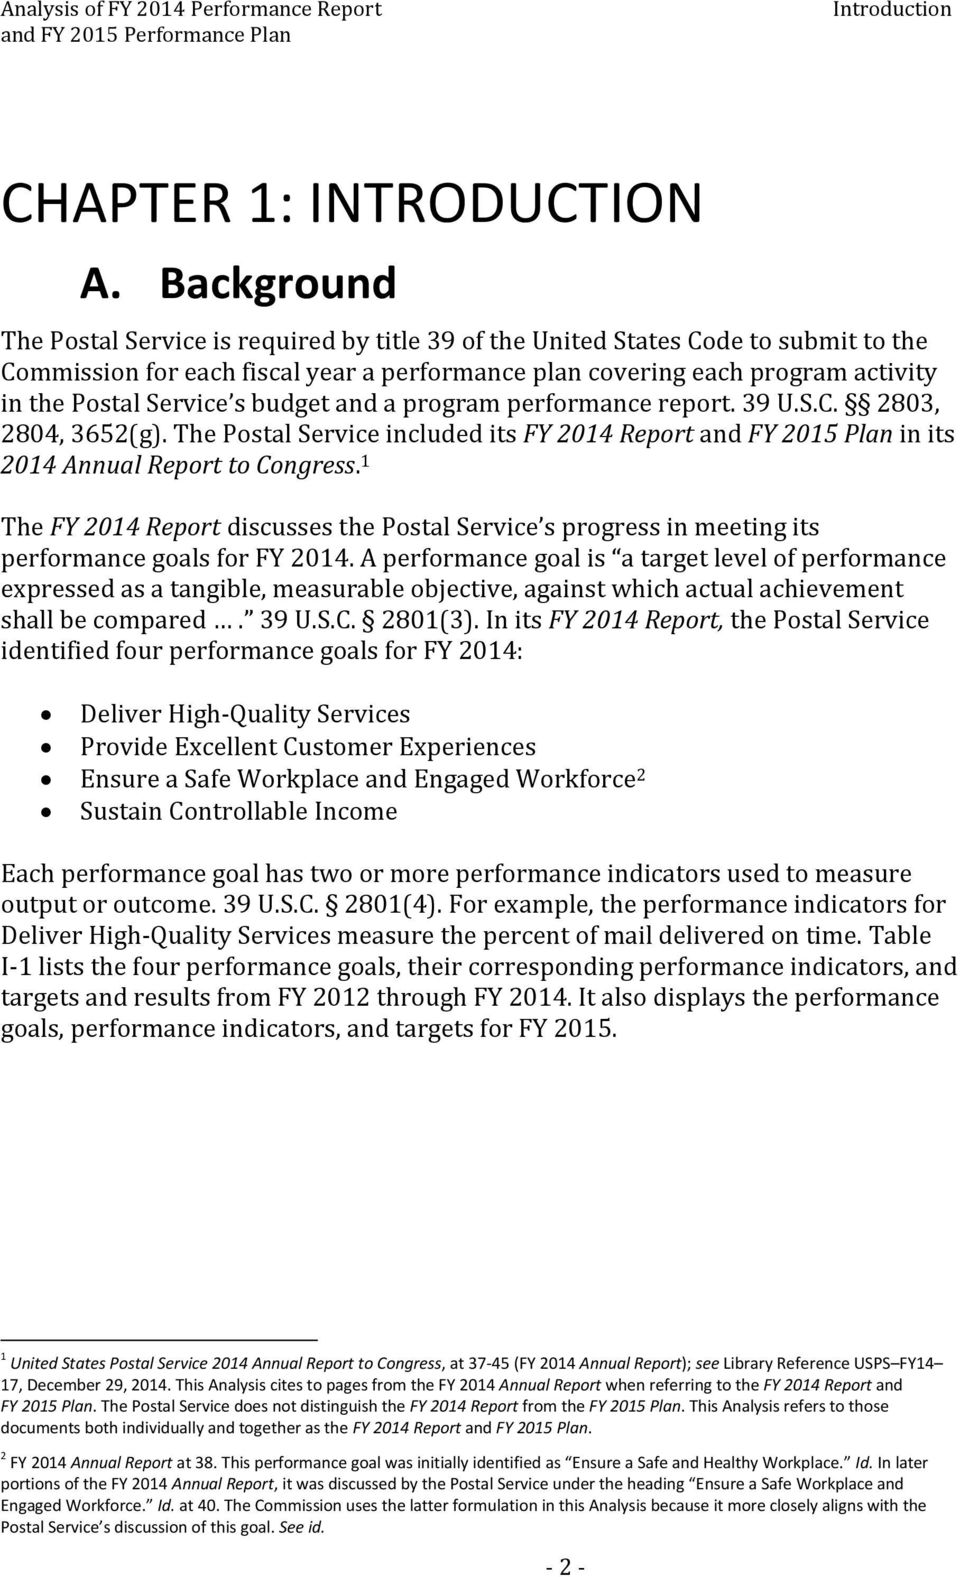 Service s budget and a program performance report. 39 U.S.C. 2803, 2804, 3652(g). The Postal Service included its FY 2014 Report and FY 2015 Plan in its 2014 Annual Report to Congress.